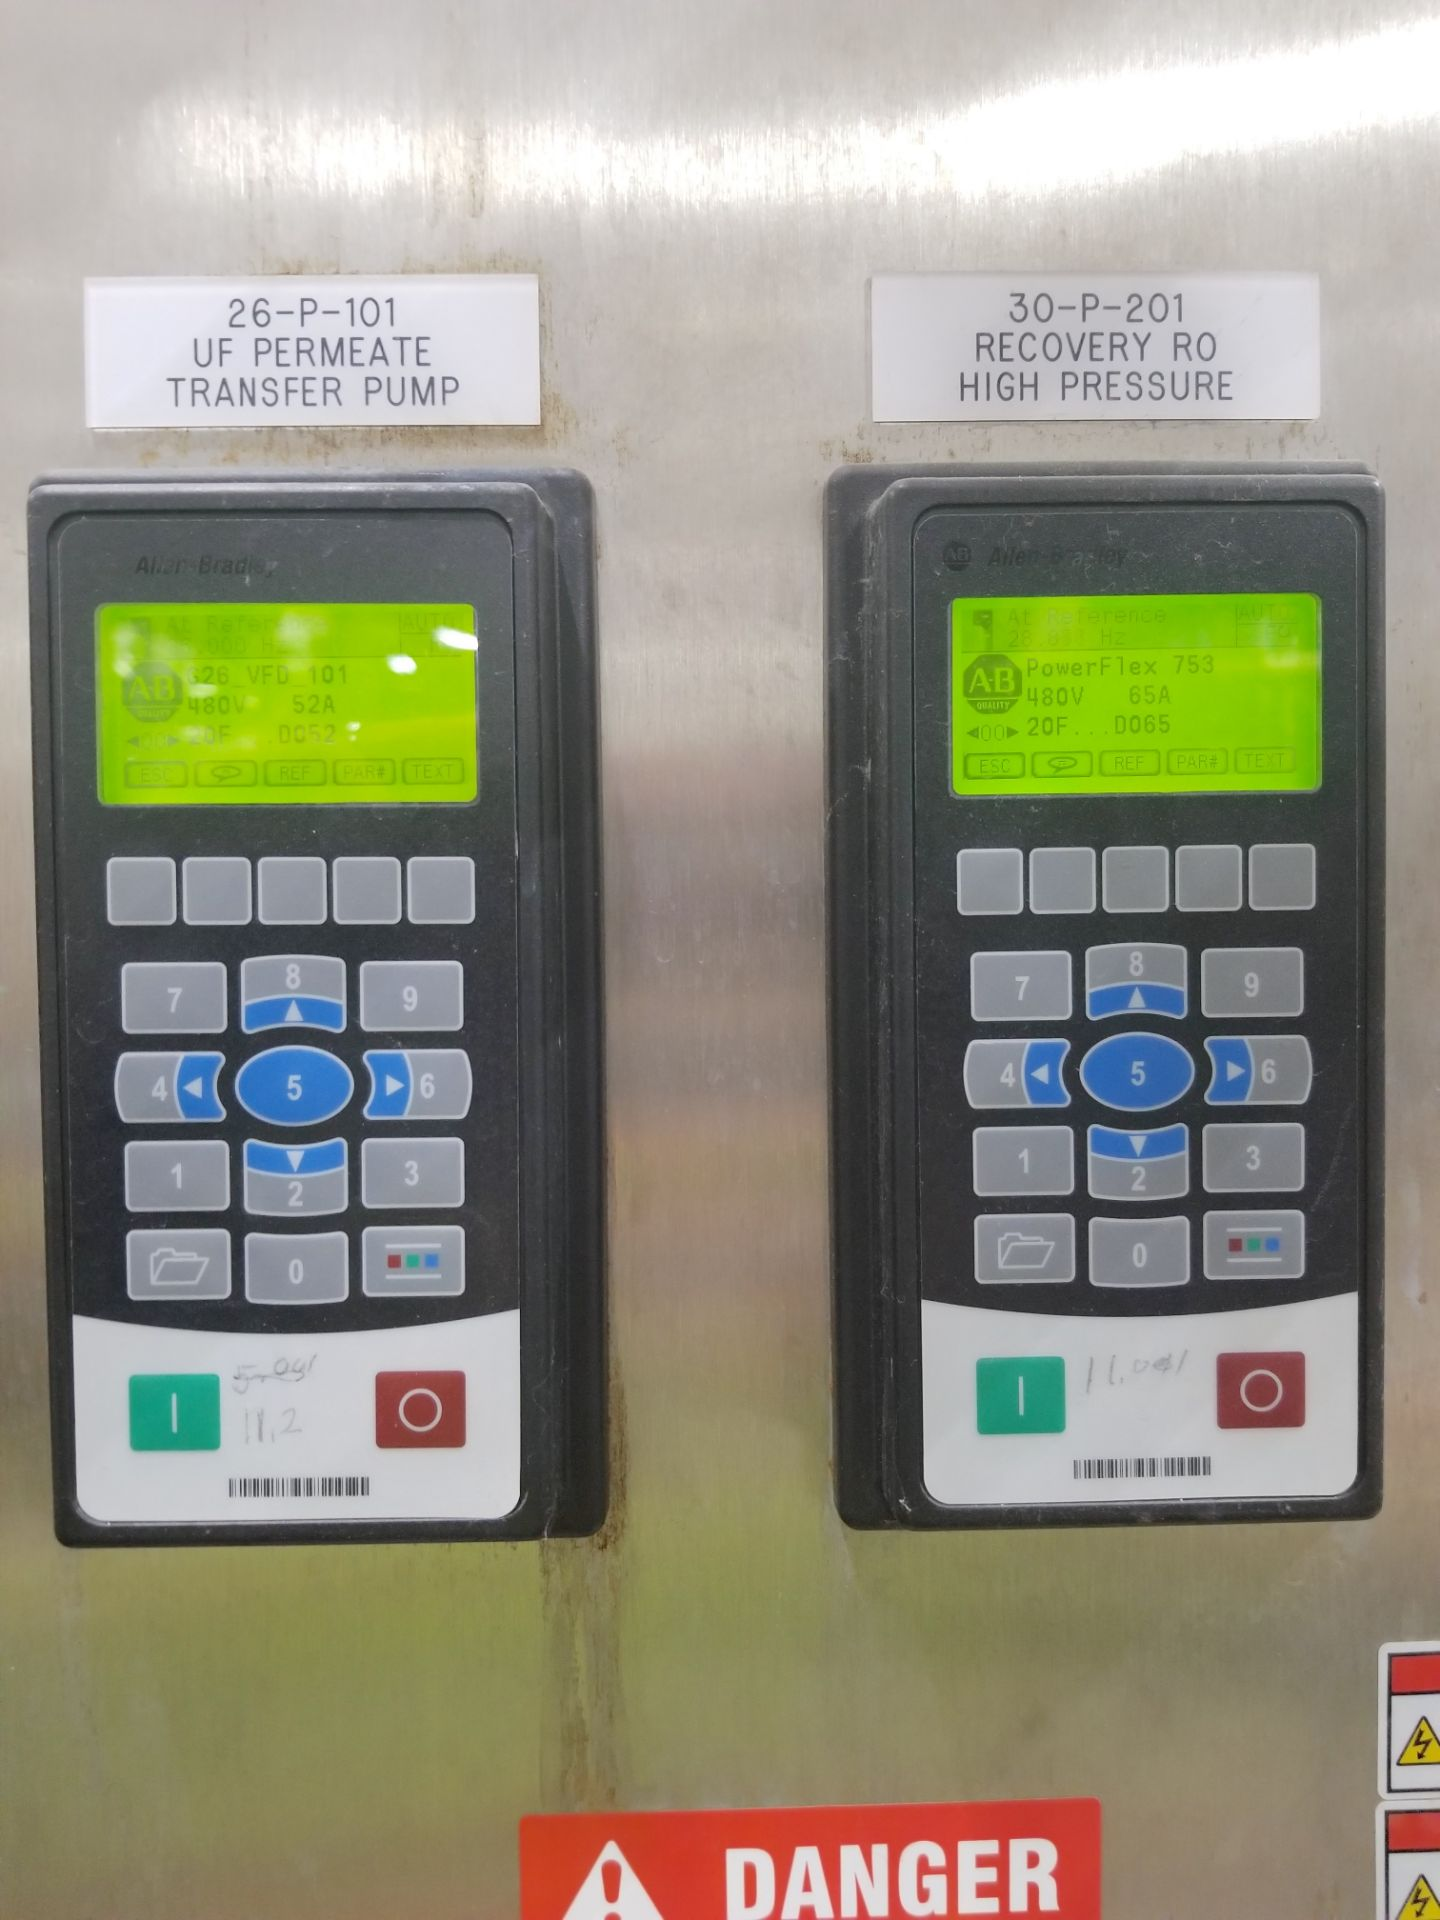 Rockwell Automation VFD Control Panel - Image 10 of 11